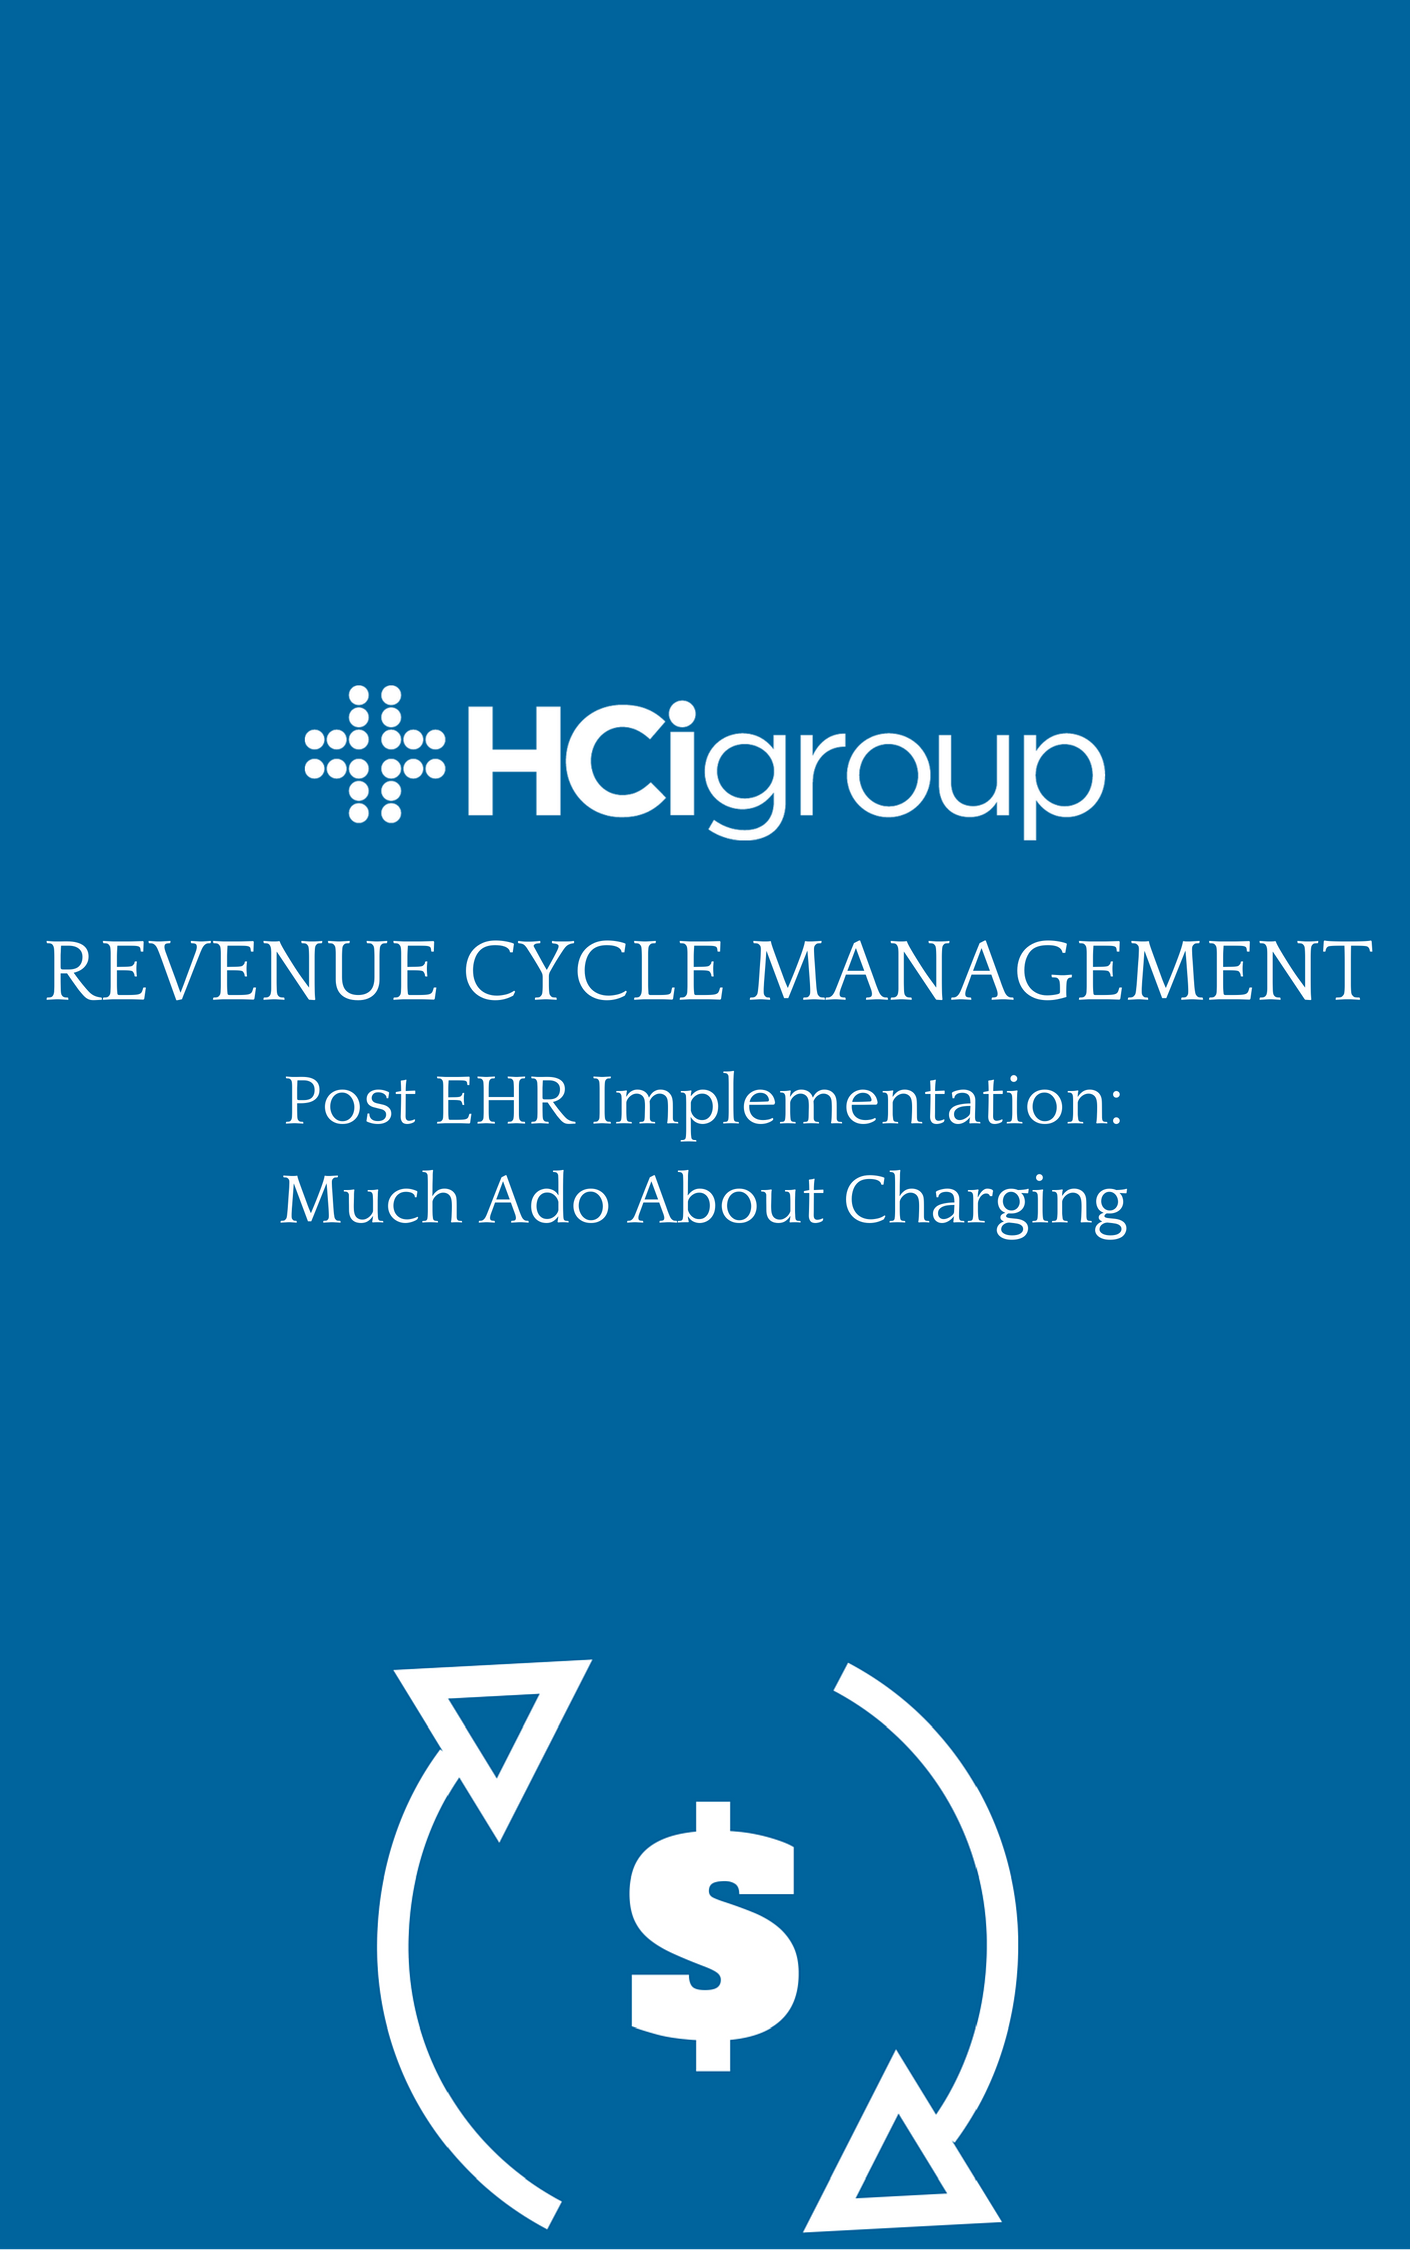 Revenue Cycle Management (RCM) Post EHR Implementation: Much Ado About Charging